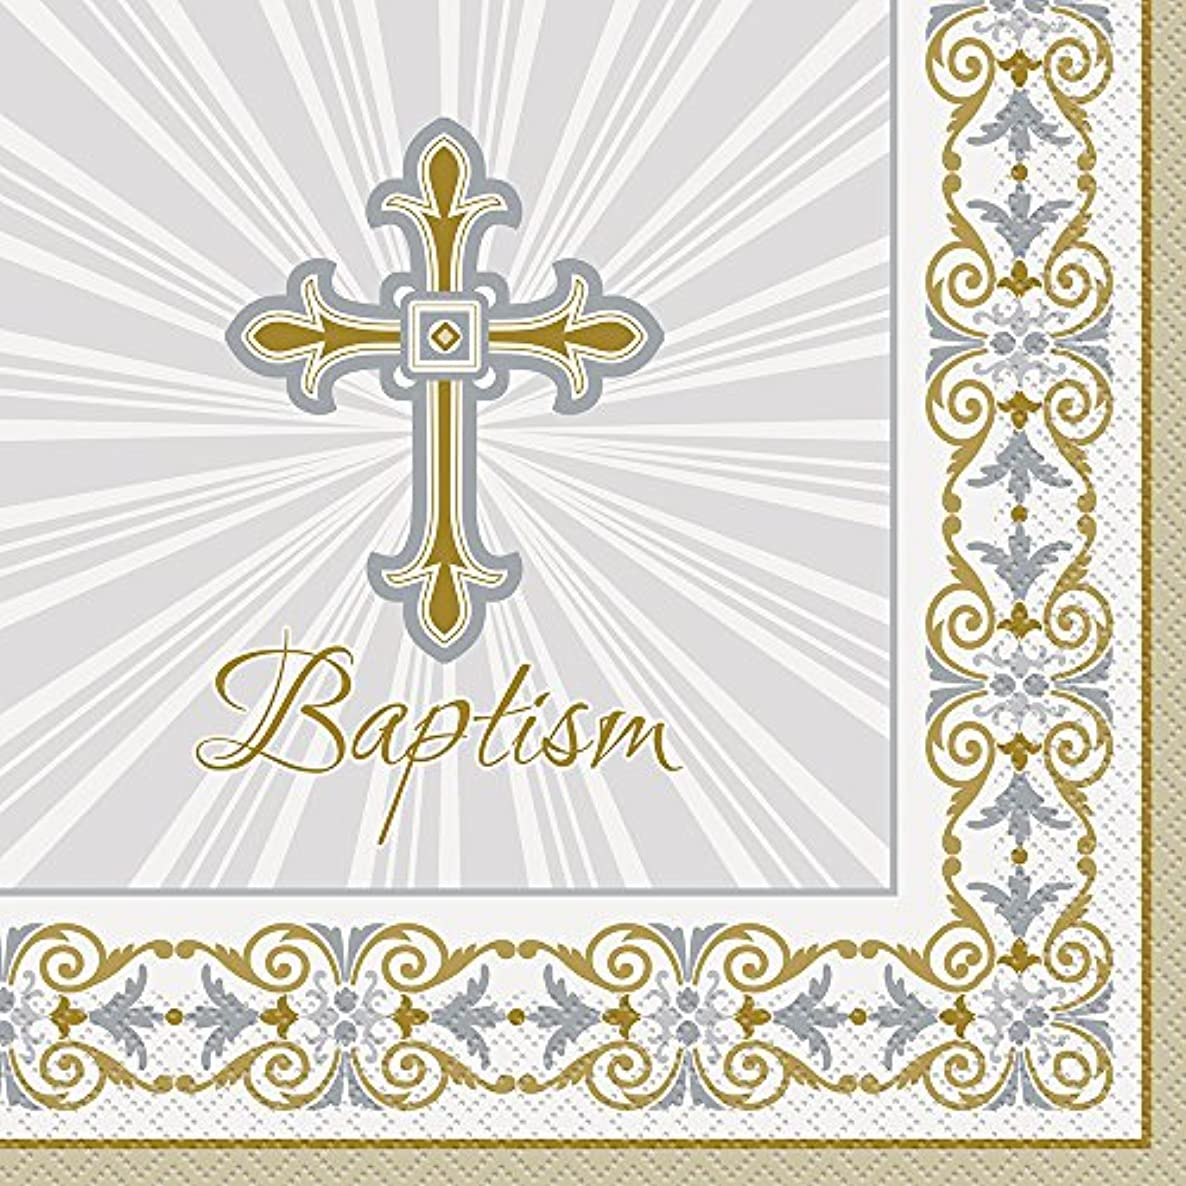 Gold & Silver Radiant Cross Baptism Party Napkins, 16ct